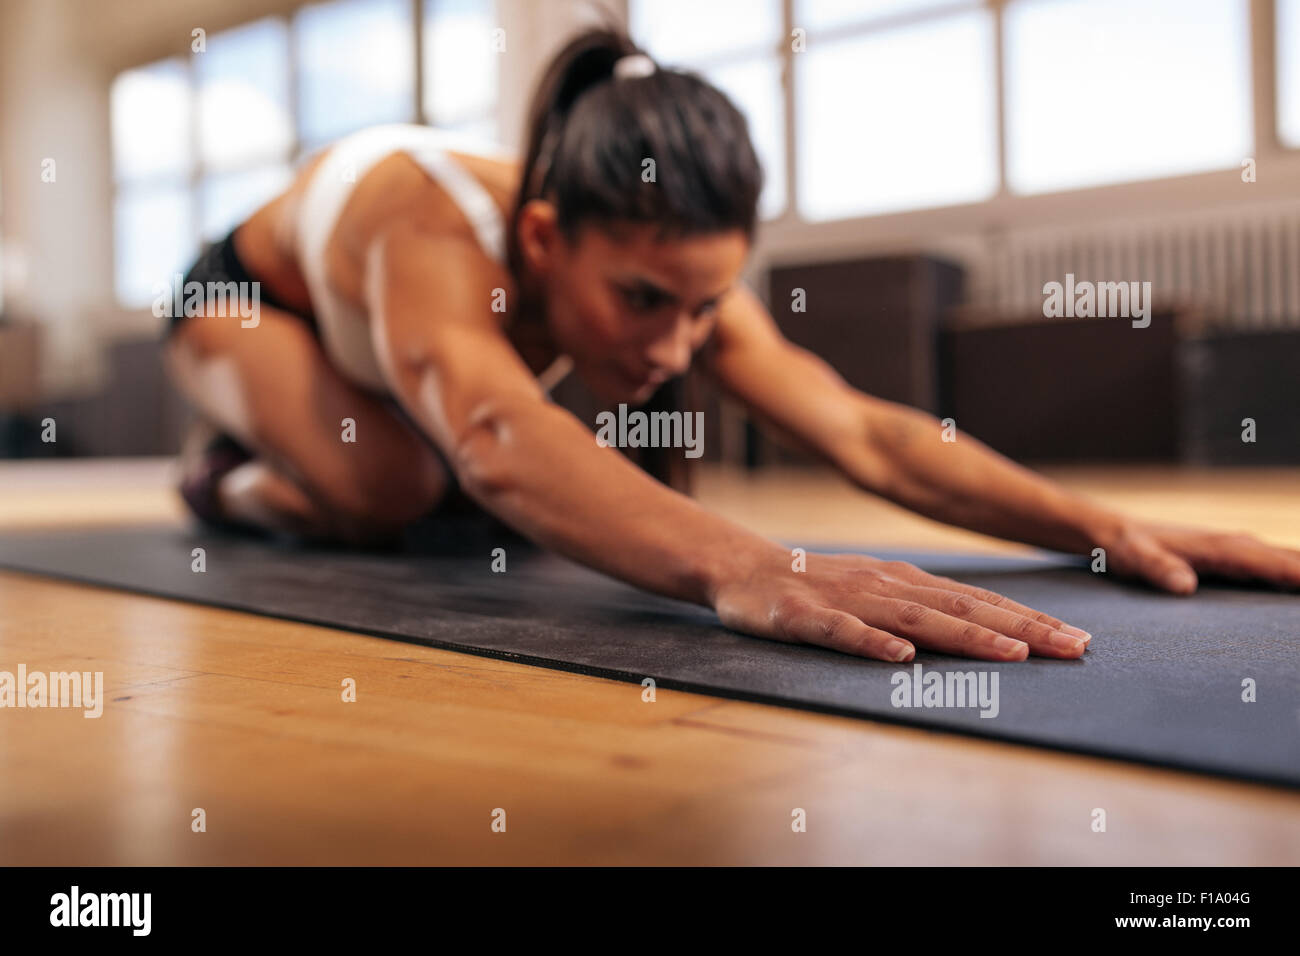 Woman doing stretching workout on fitness mat, focus on hands, fitness female performing yoga on exercise mat at - Stock Image